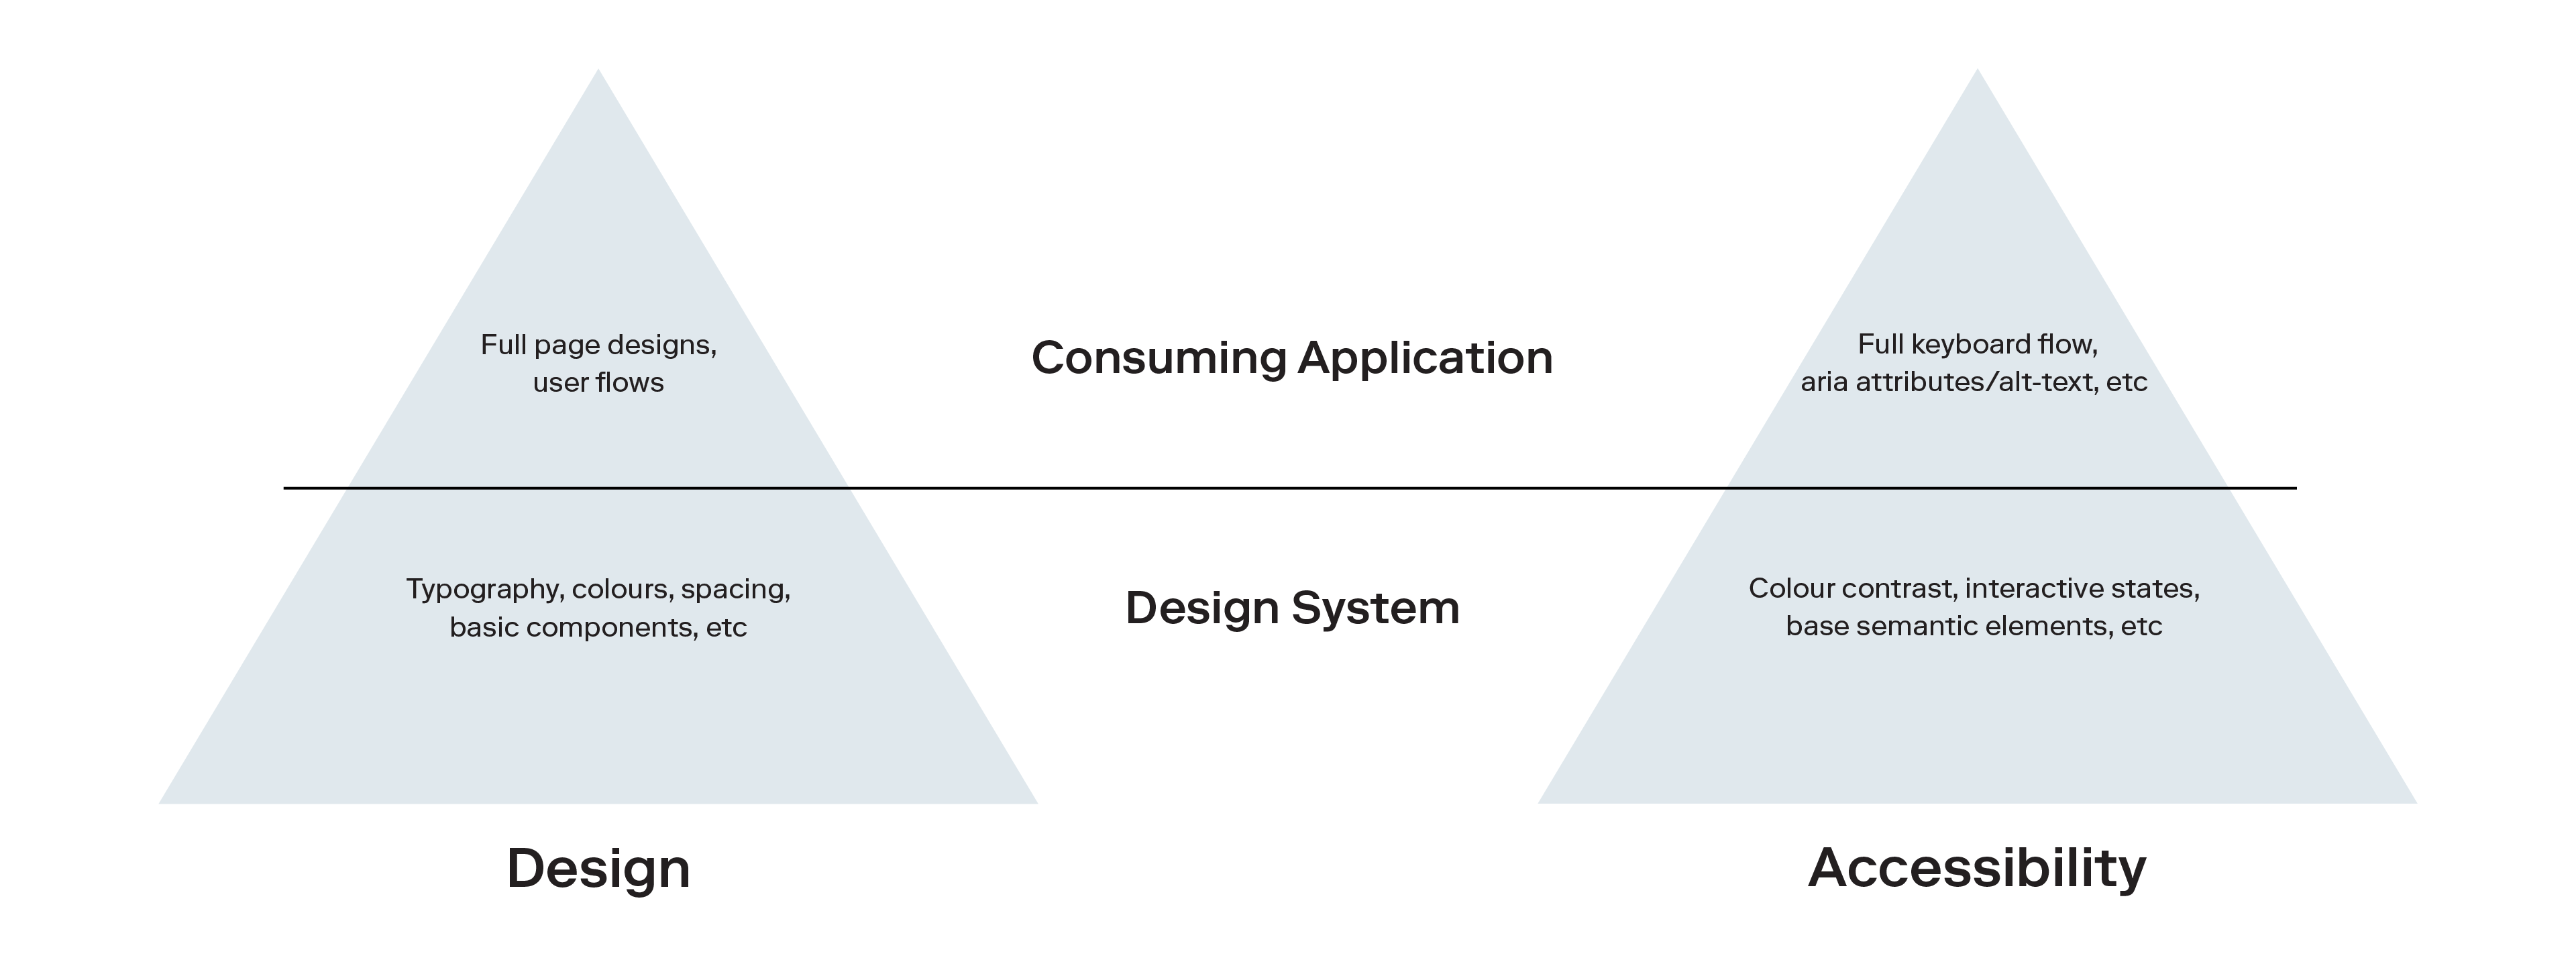 Two pyramids are shown drawing a parallel between design foundations and accessible foundations in a design system. The base of the Pyramids represents the design system work, for design you can build in Typography, colours, spacing, basic components, for Accessibility; colour contrasts, interactive states, and base semantic elements. The top of the pyramid represents work done in the consuming application, for design you will need to create full page designs and user flows, and for accessibility; the full keyboard flow, aria attributes and alt text""